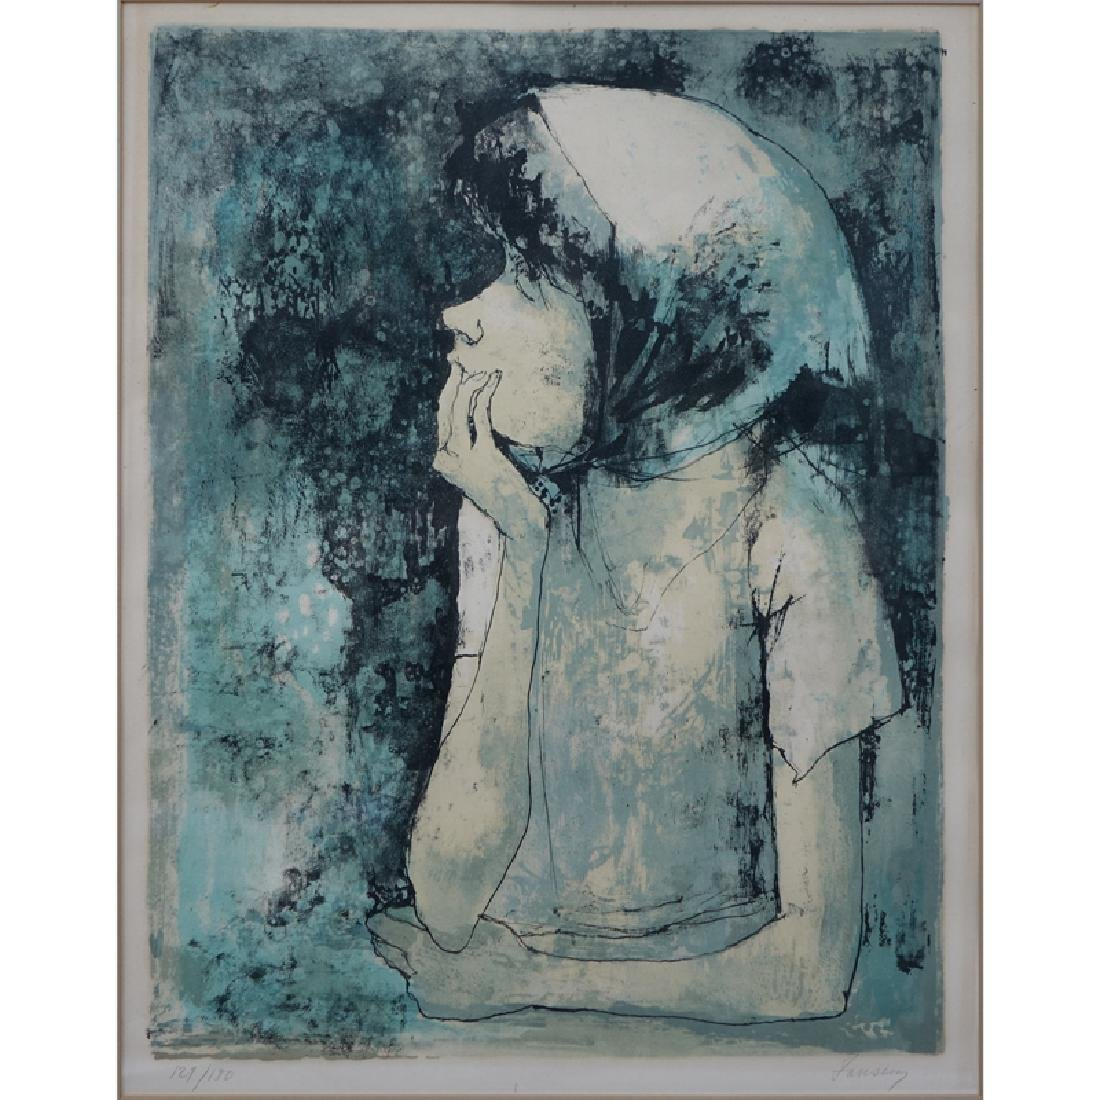 Jean Jansem, French (1920 - 2013) Color lithograph